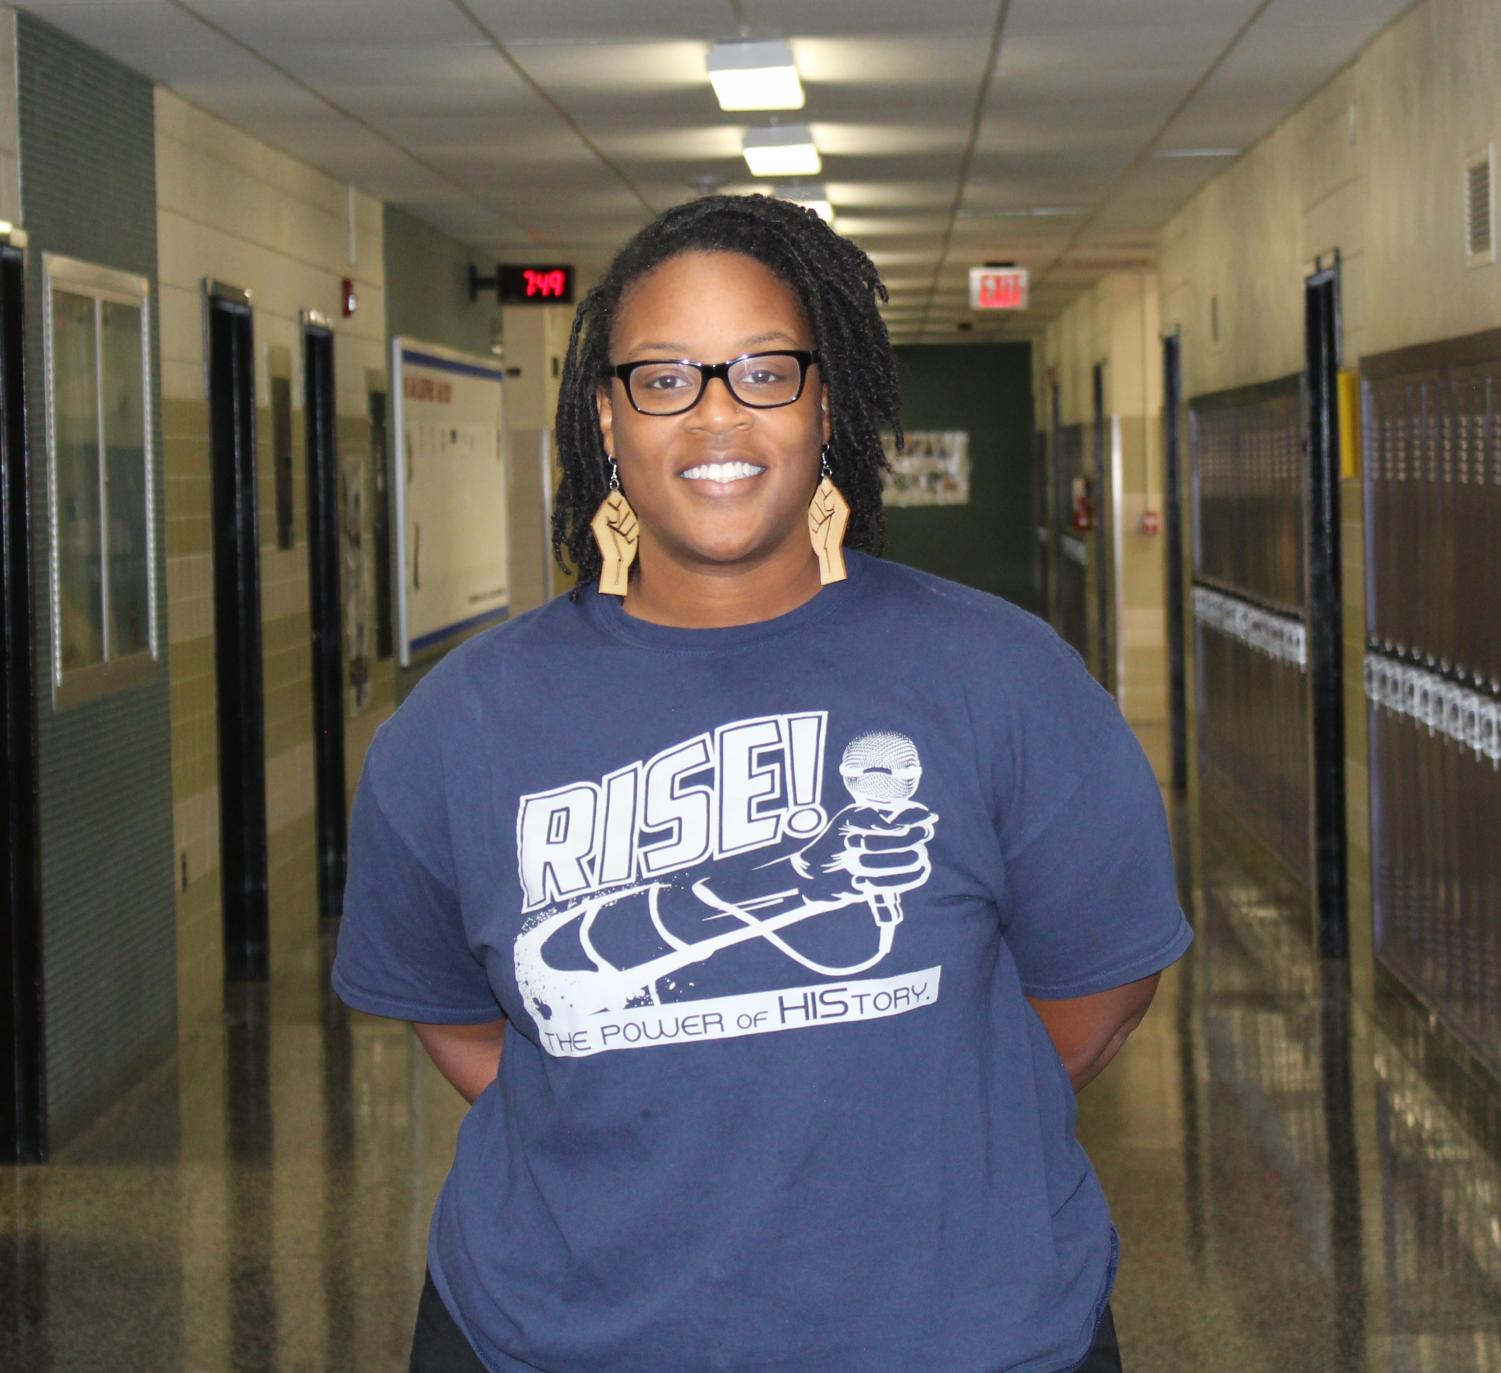 Director of Fooball Operations, Mrs. Graham, poses for a photo in the Menchville hall.